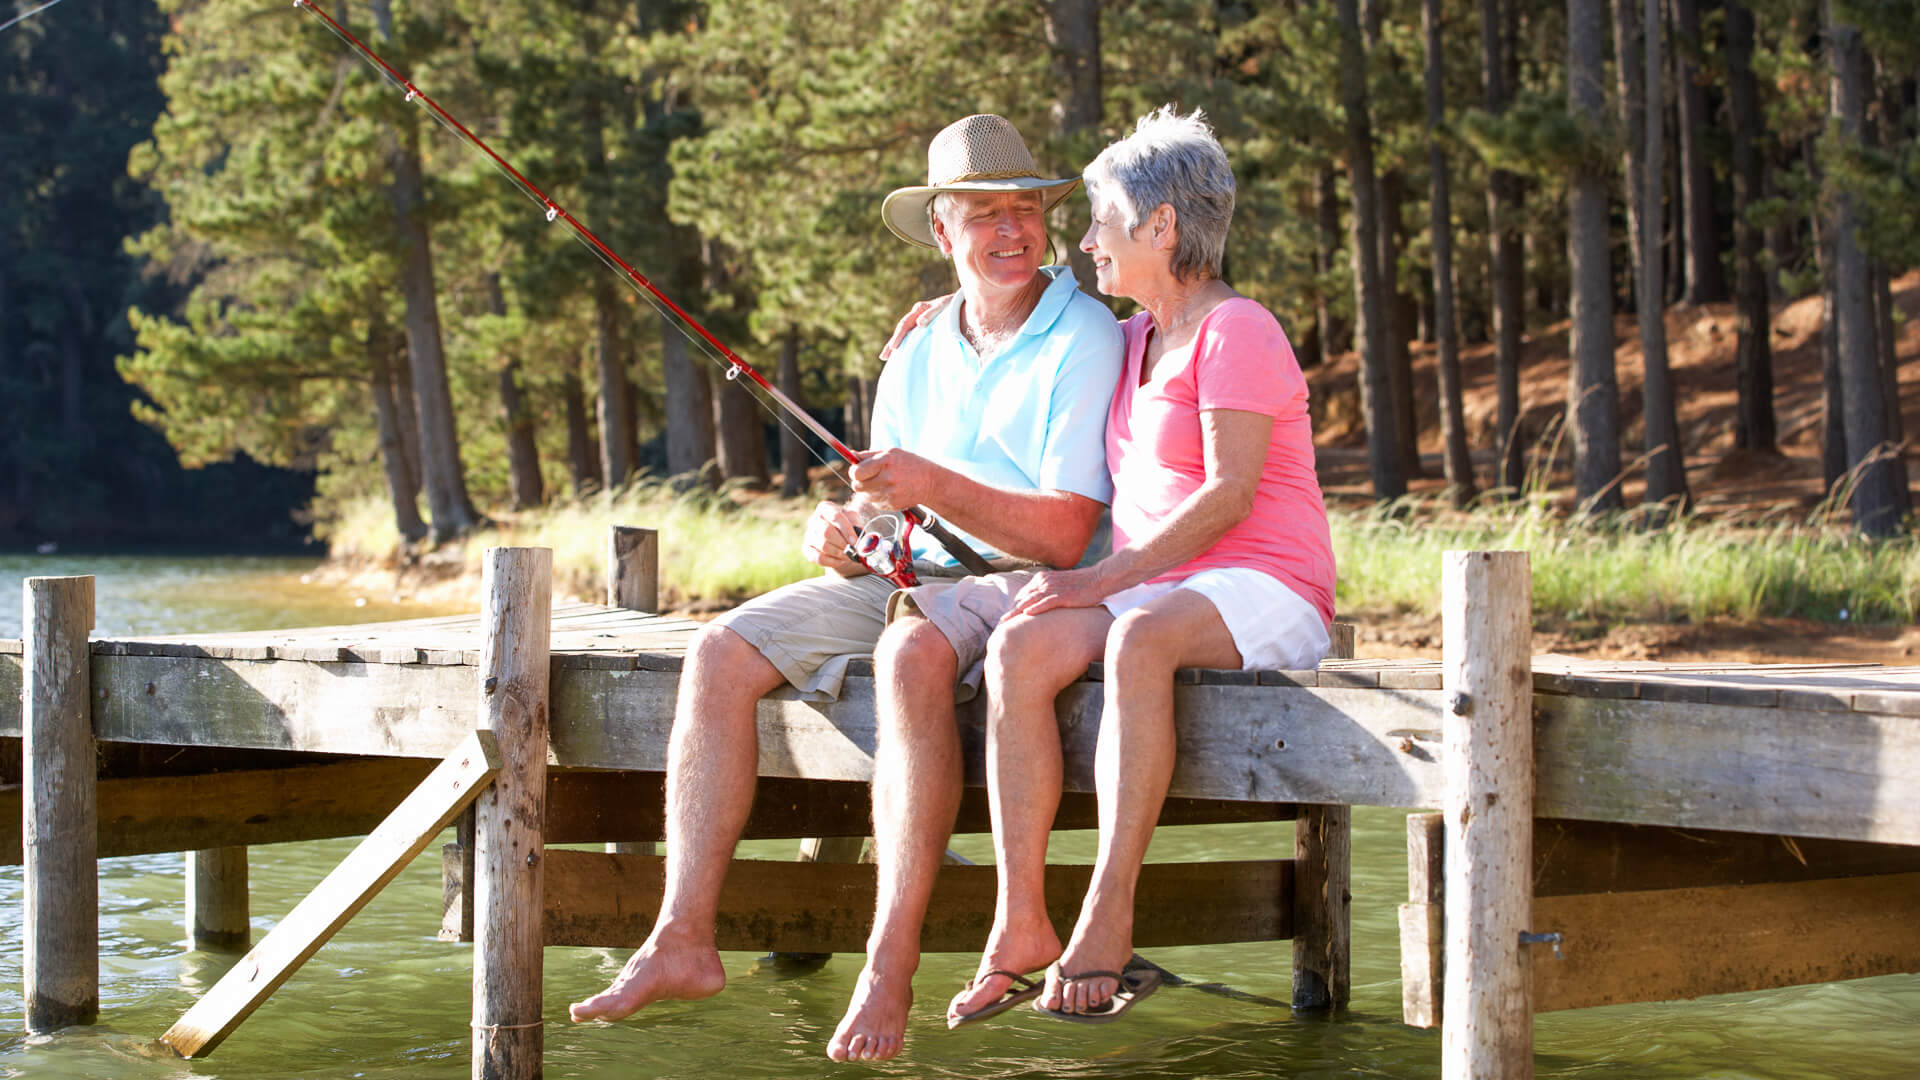 Senior couple sitting on jetty together fishing, enjoying their time in retirement.